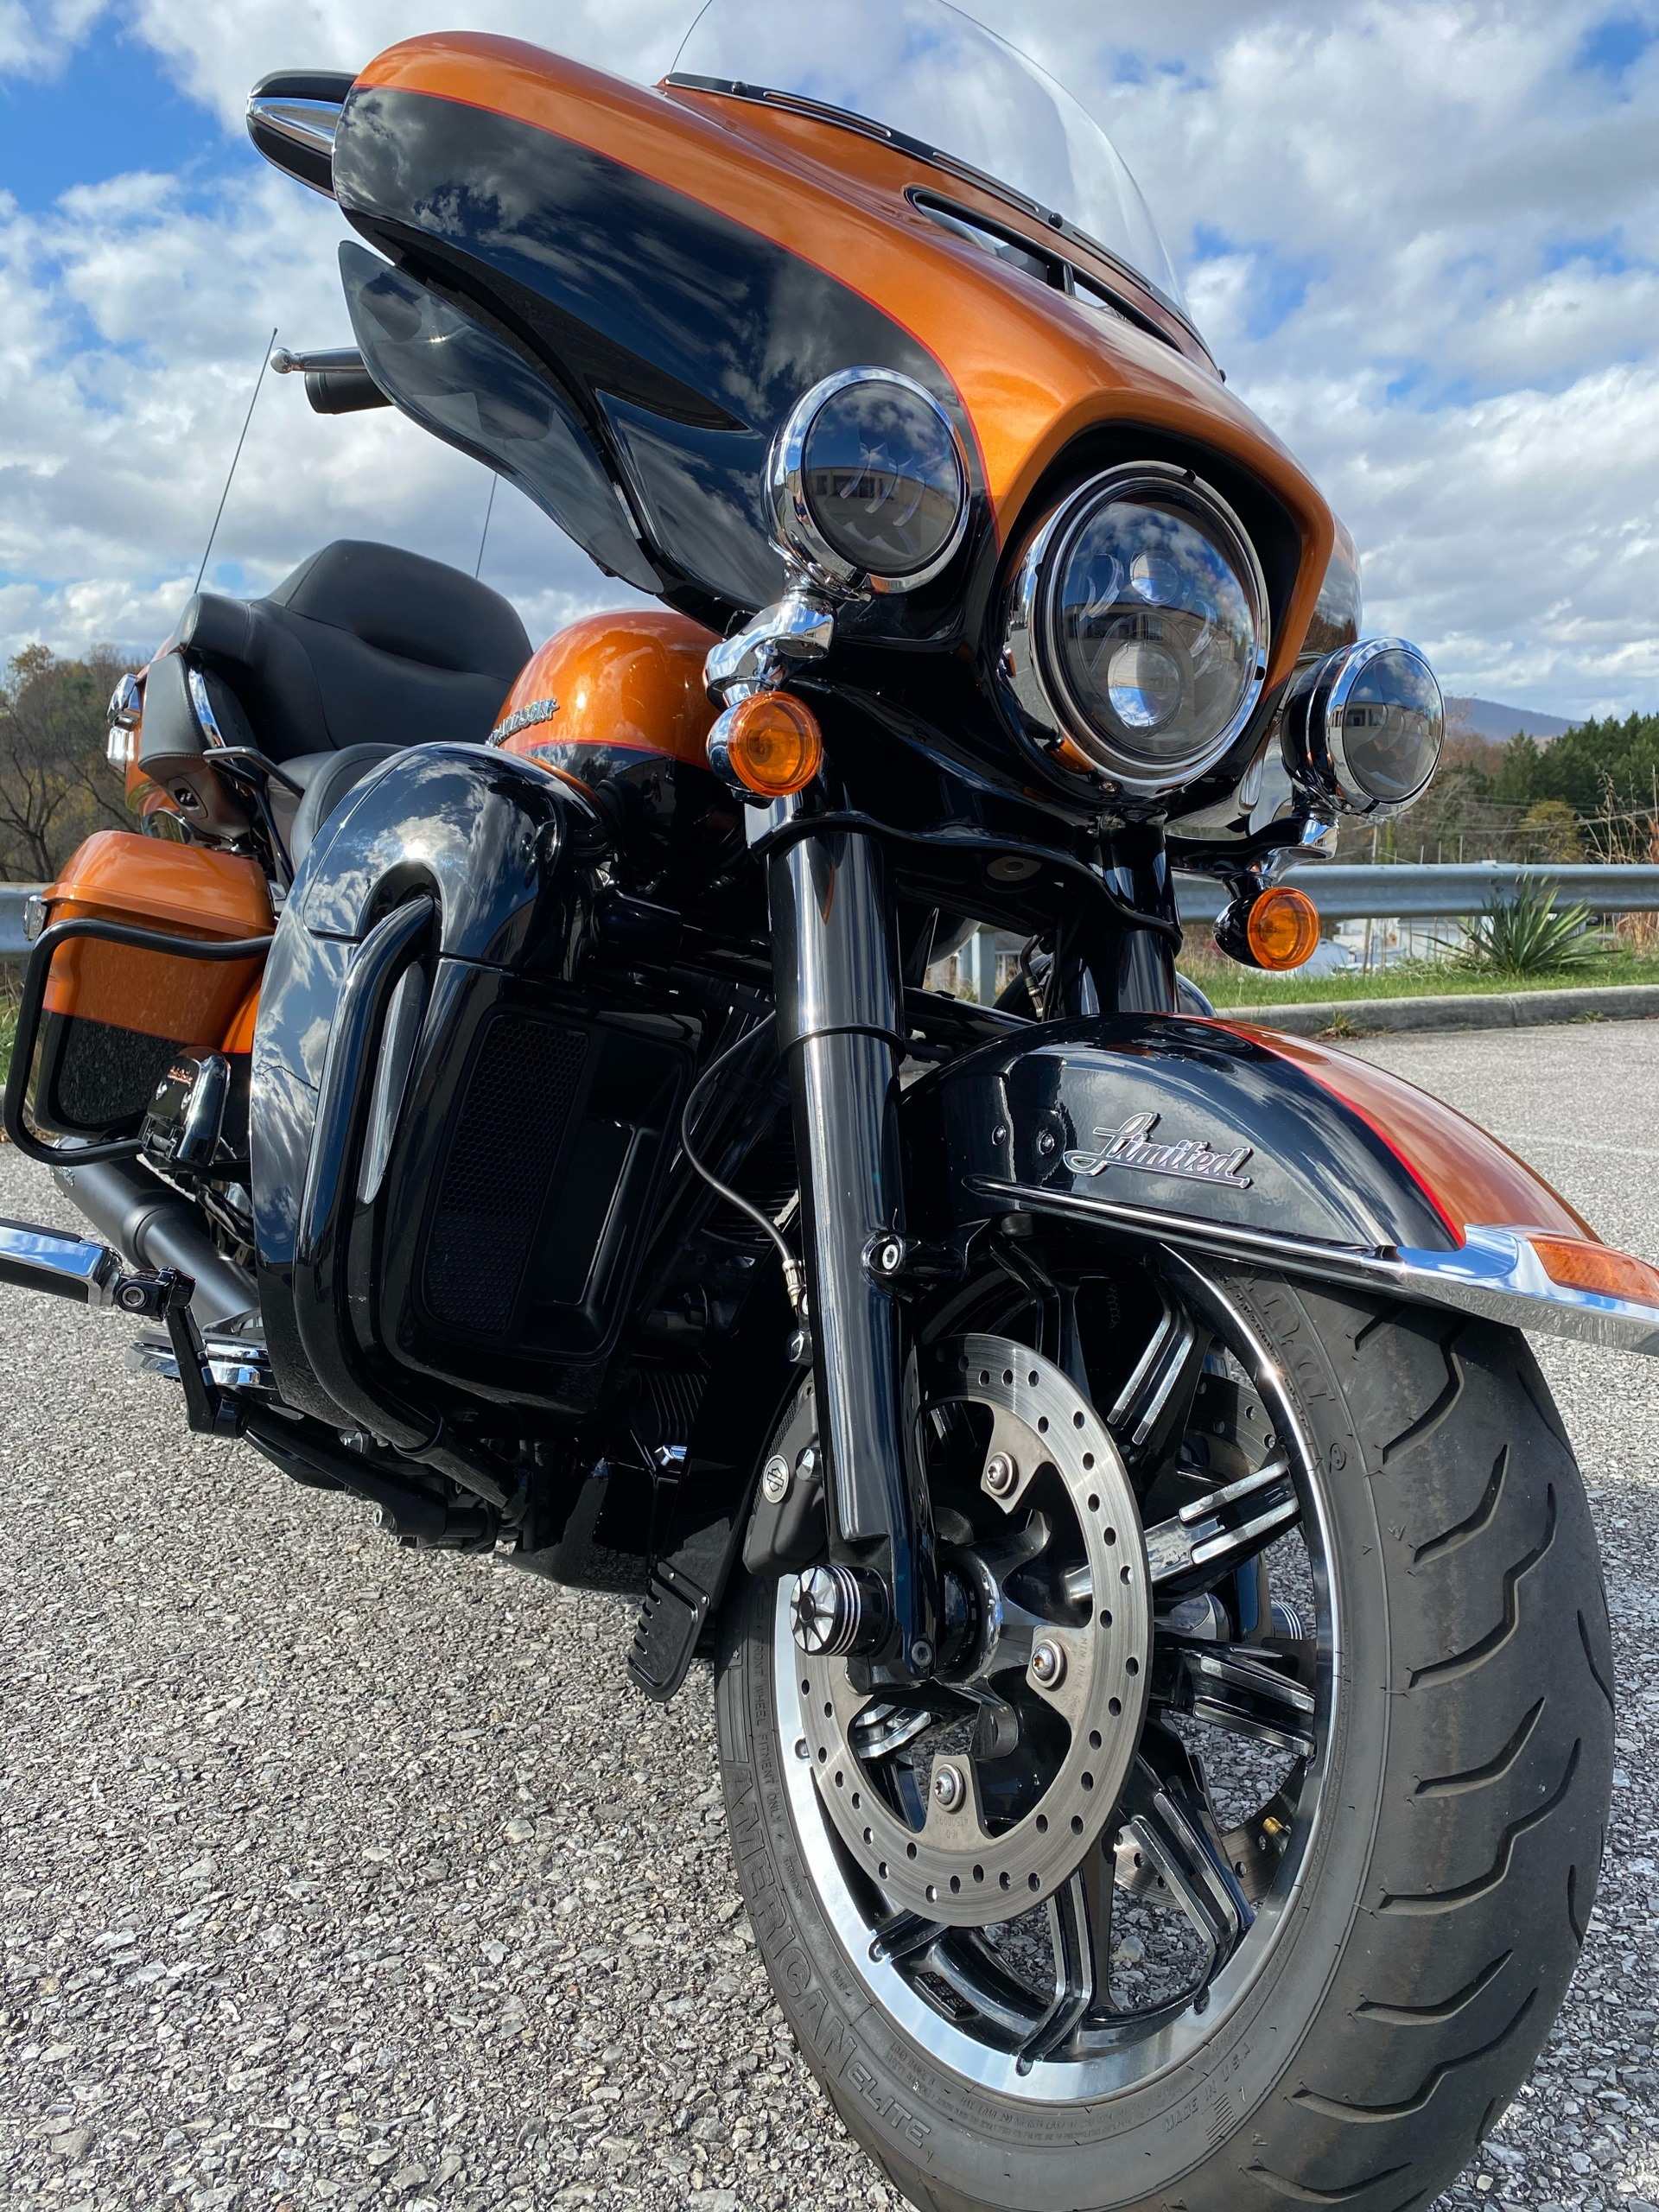 2014 Harley-Davidson Electra Glide Limited in Roanoke, Virginia - Photo 6